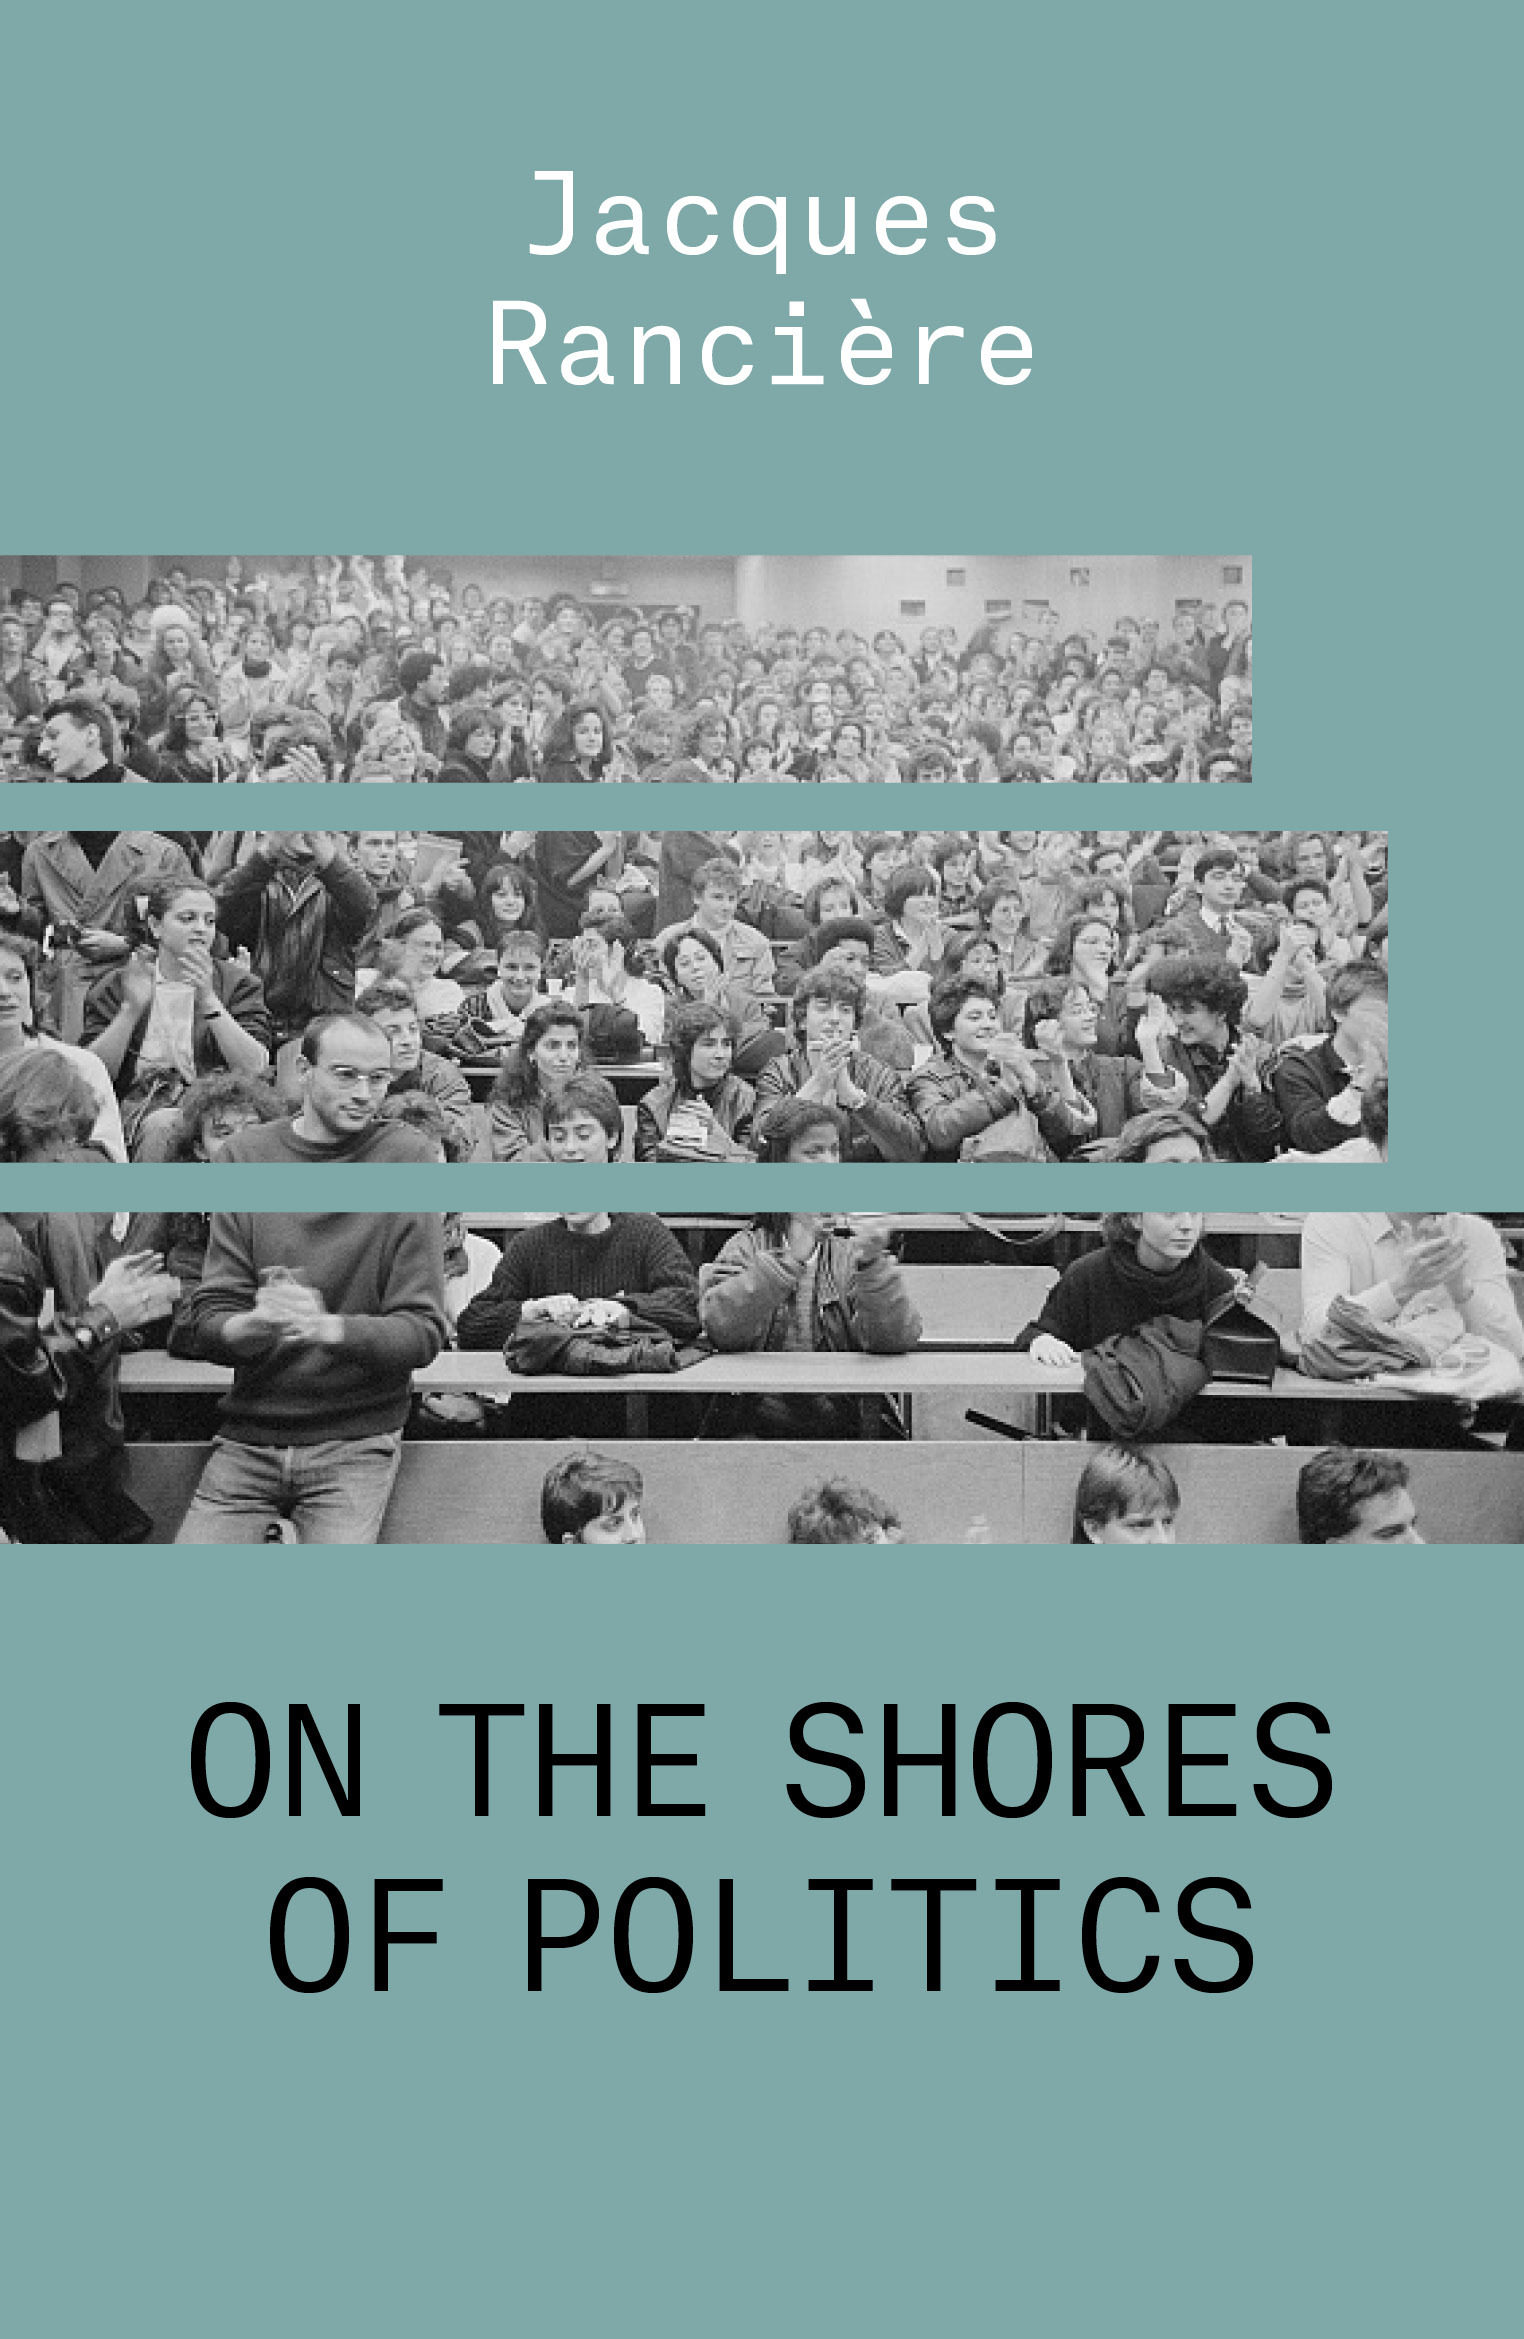 On_shores_of_politics_cover